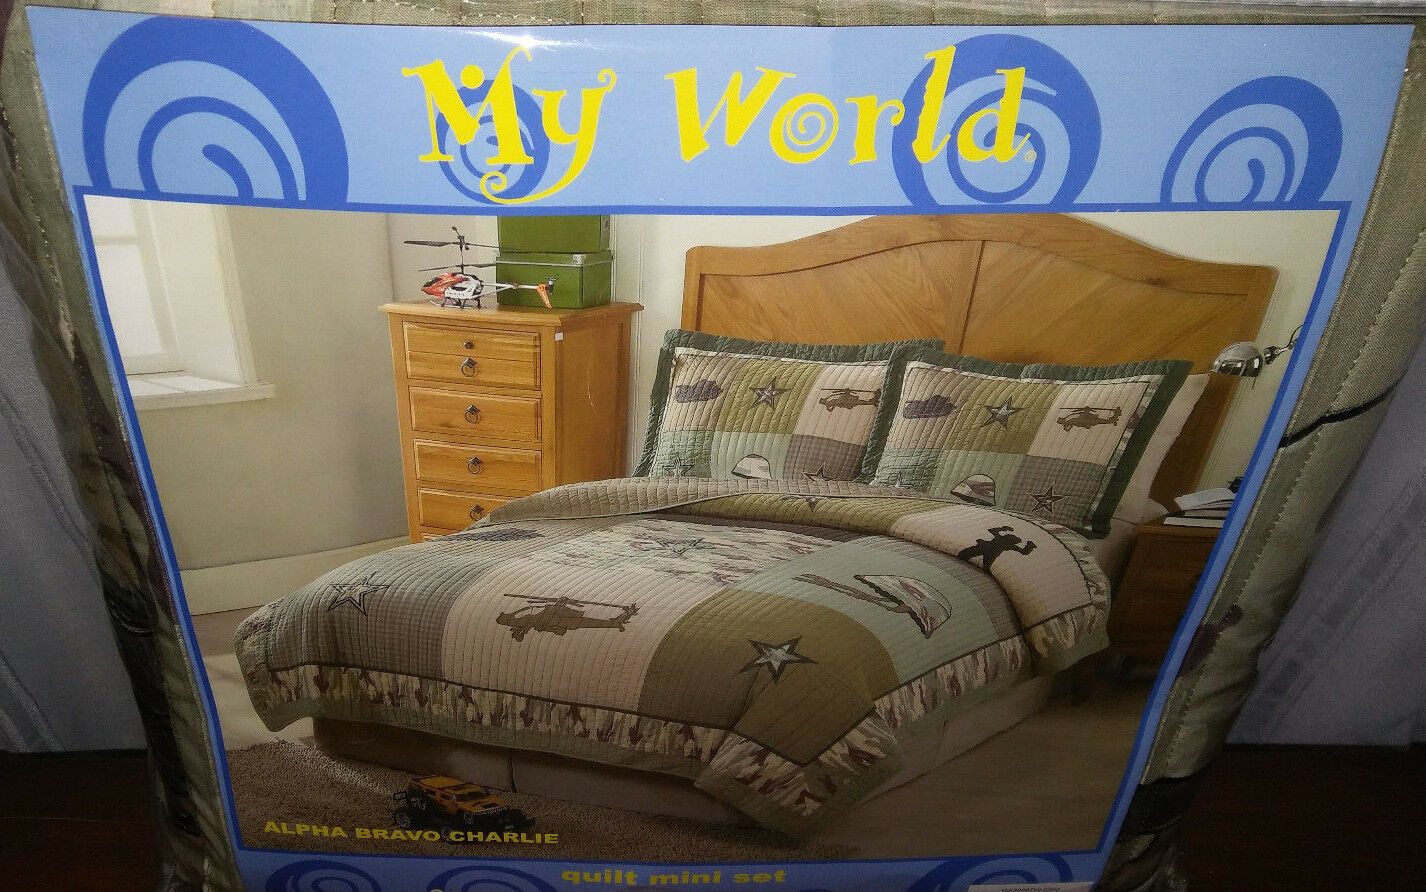 MY WORLD ALFA BRAVO CHARLIE-AIR FORCE QUILT SET-TWIN-NEW WITH TAGS